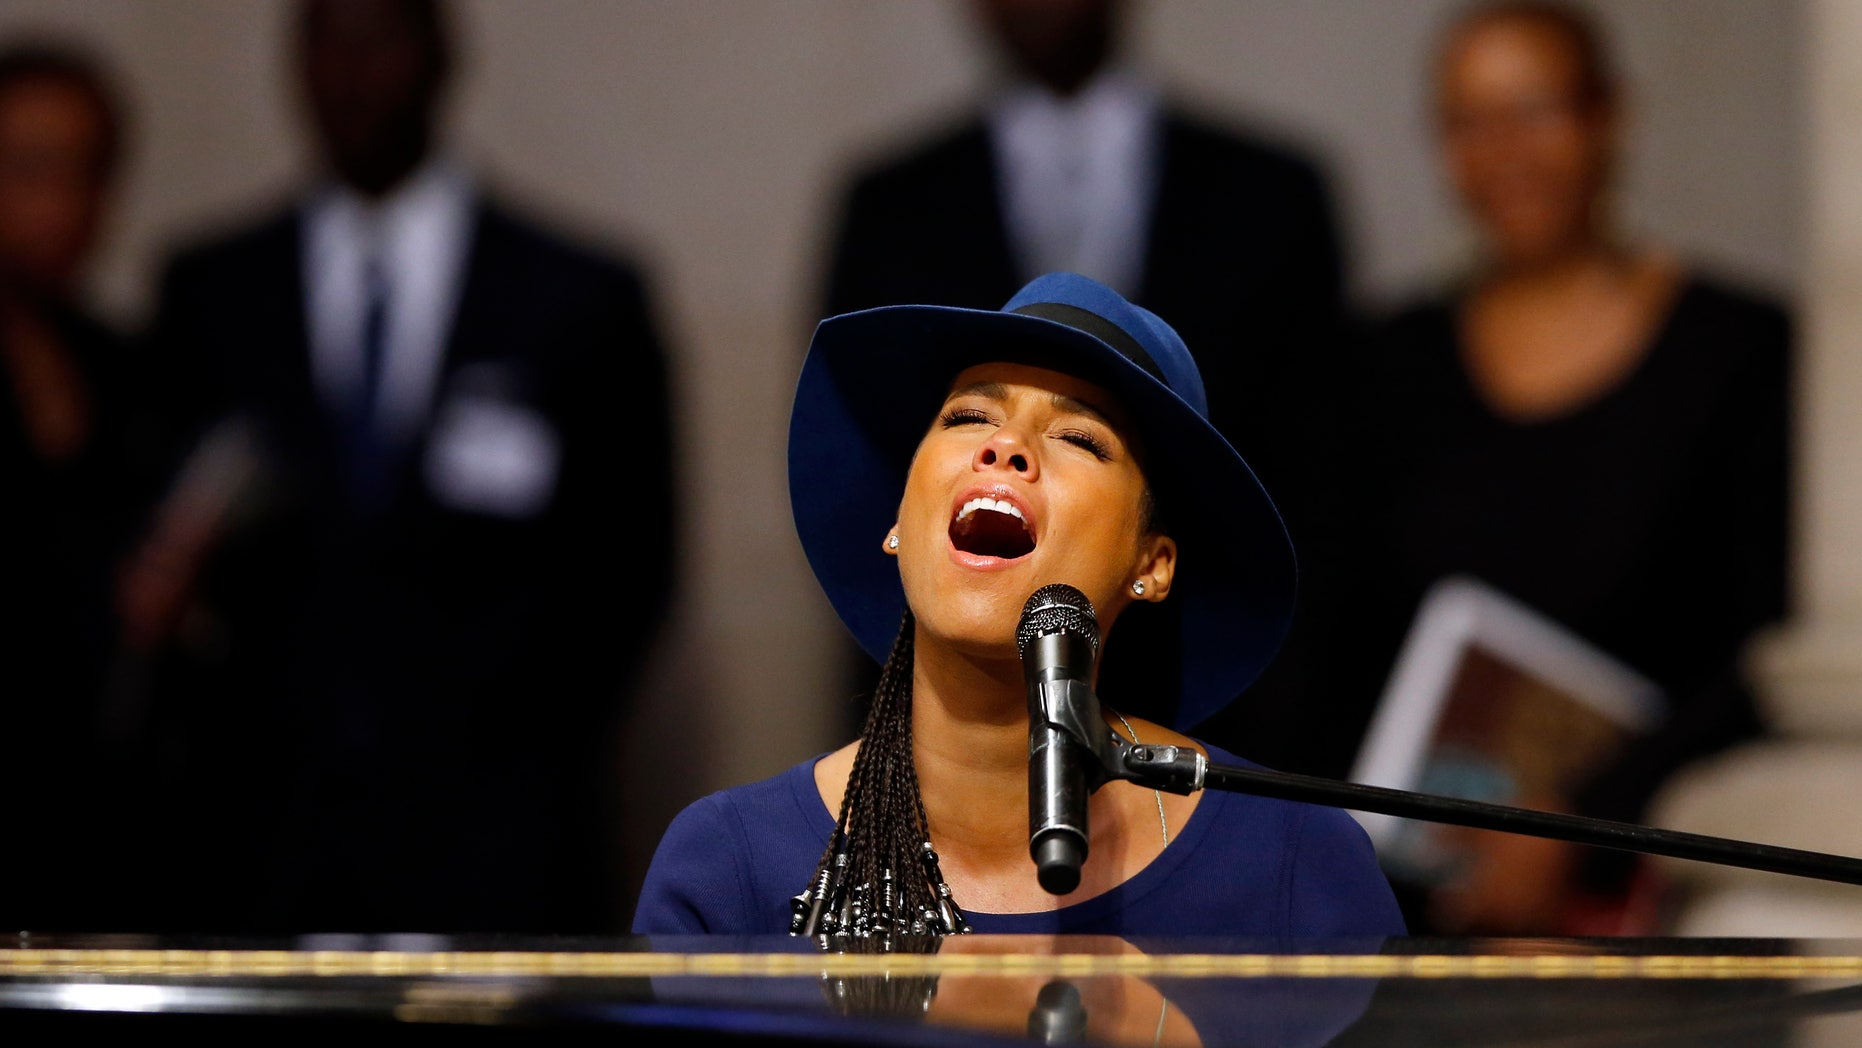 september 20, 2014. Singer Alicia Keys performs during a memorial service for actress Ruby Dee at The Riverside Church in New York.